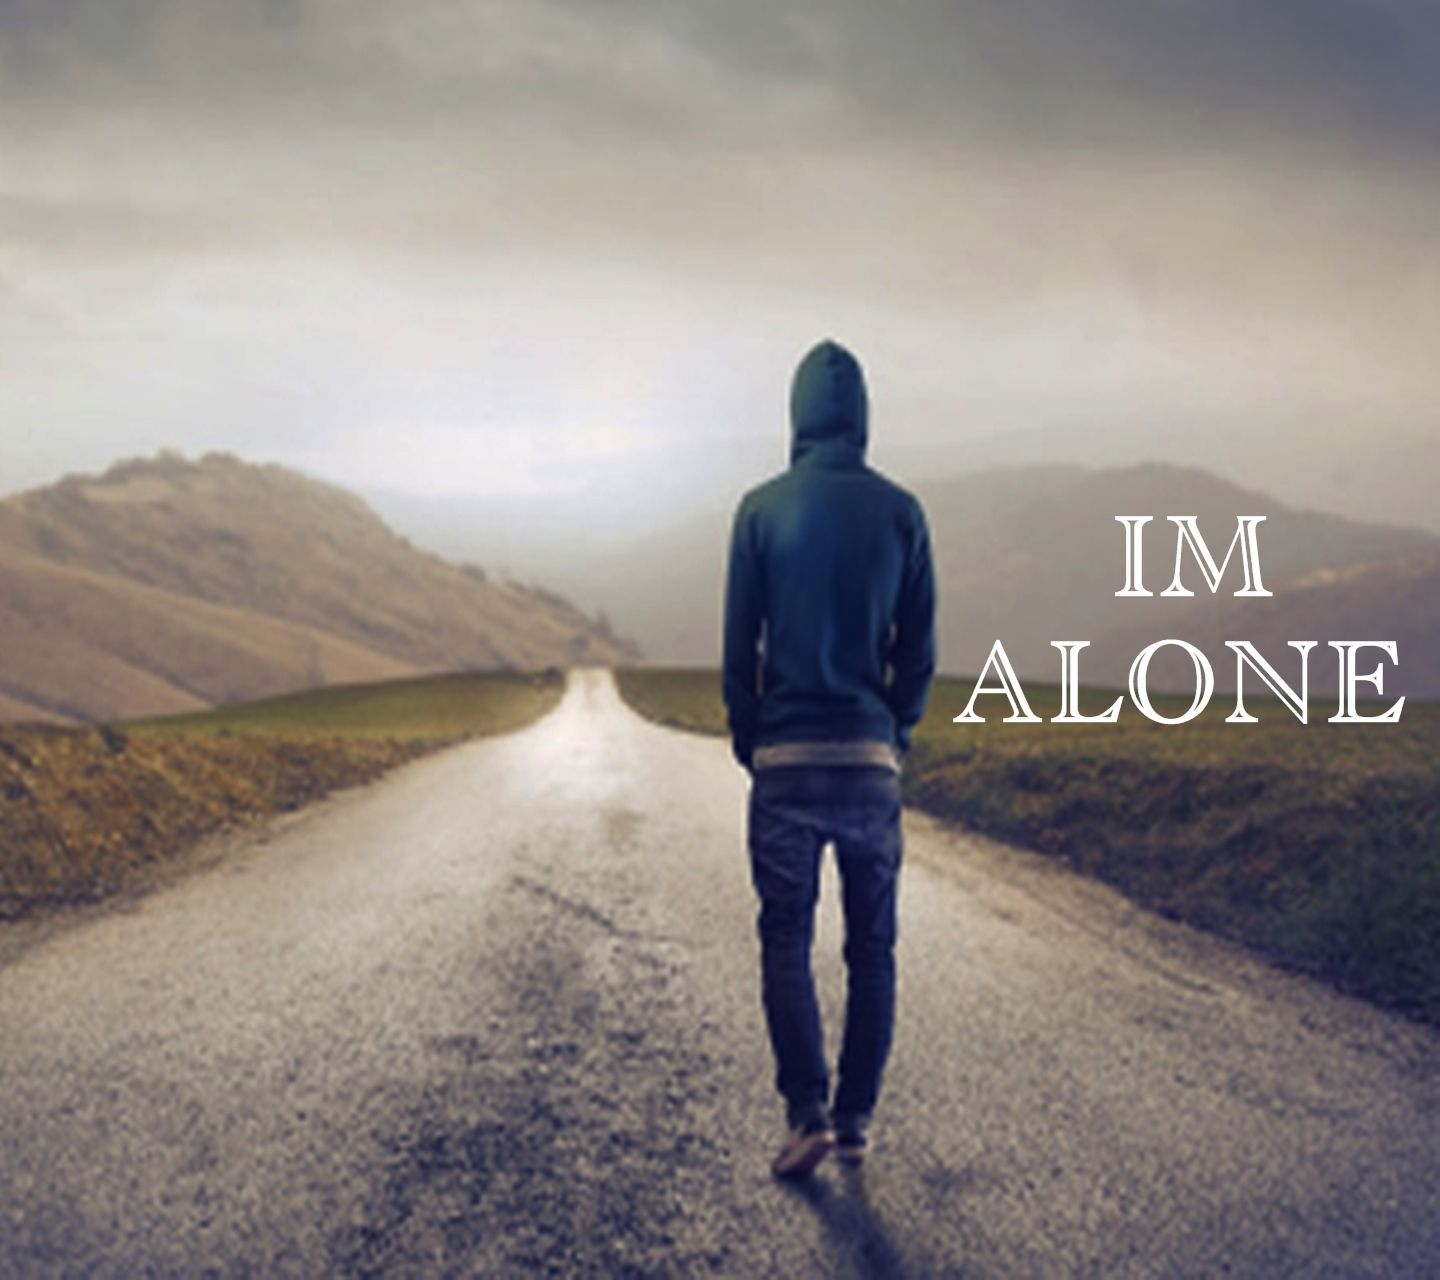 I AM Alone Wallpapers - Top Free I AM Alone Backgrounds - WallpaperAccess